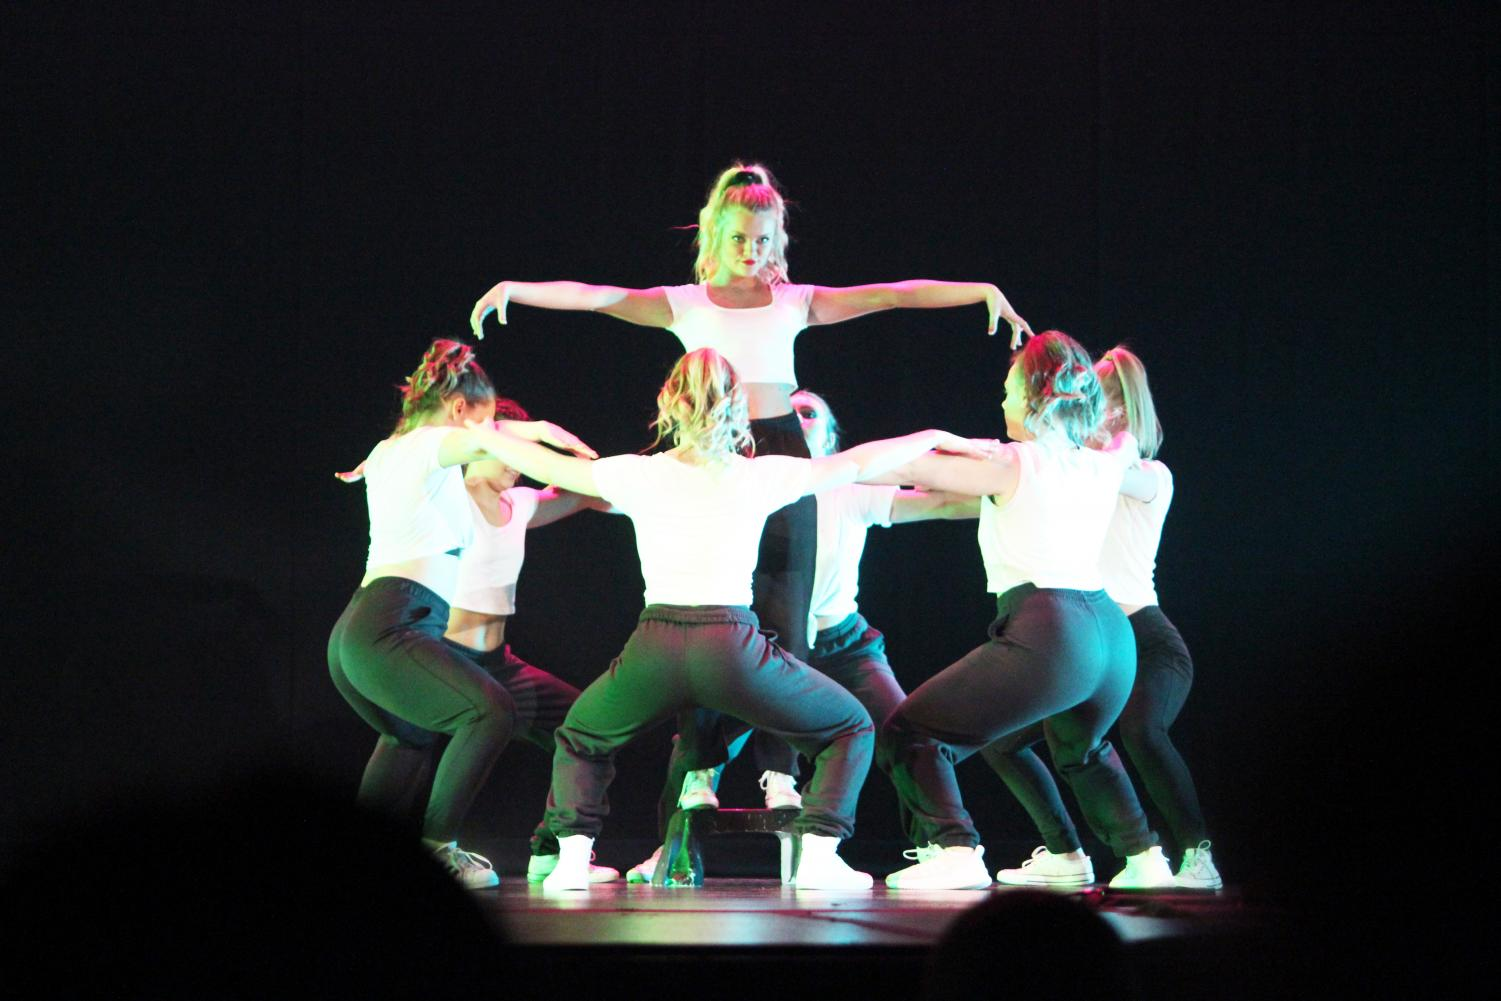 """Michaela McKay (standing) seems to command the stage in """"Lose Control"""" at Dance Emsemble's """"Electricity"""" show Saturday night."""